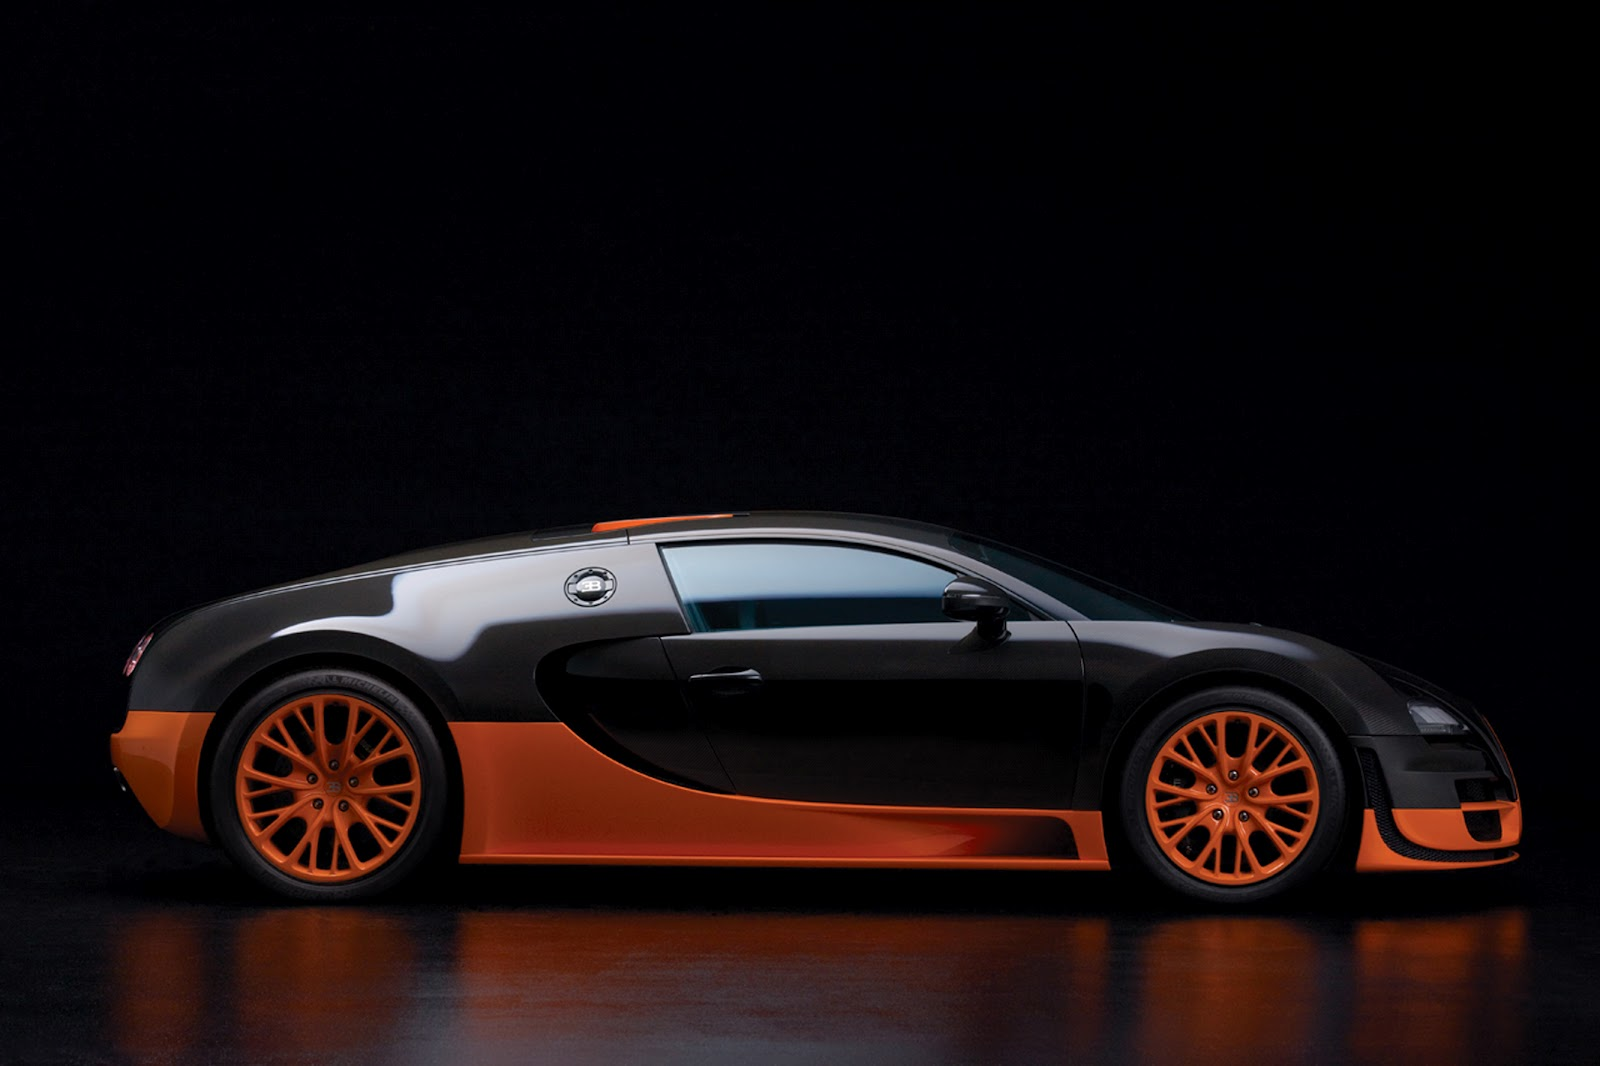 the super sport version of the veyron is the fastest street legal production car in the world with a top speed of 431 kmh 268 mph - Top 10 Fast Cars In The World 2012